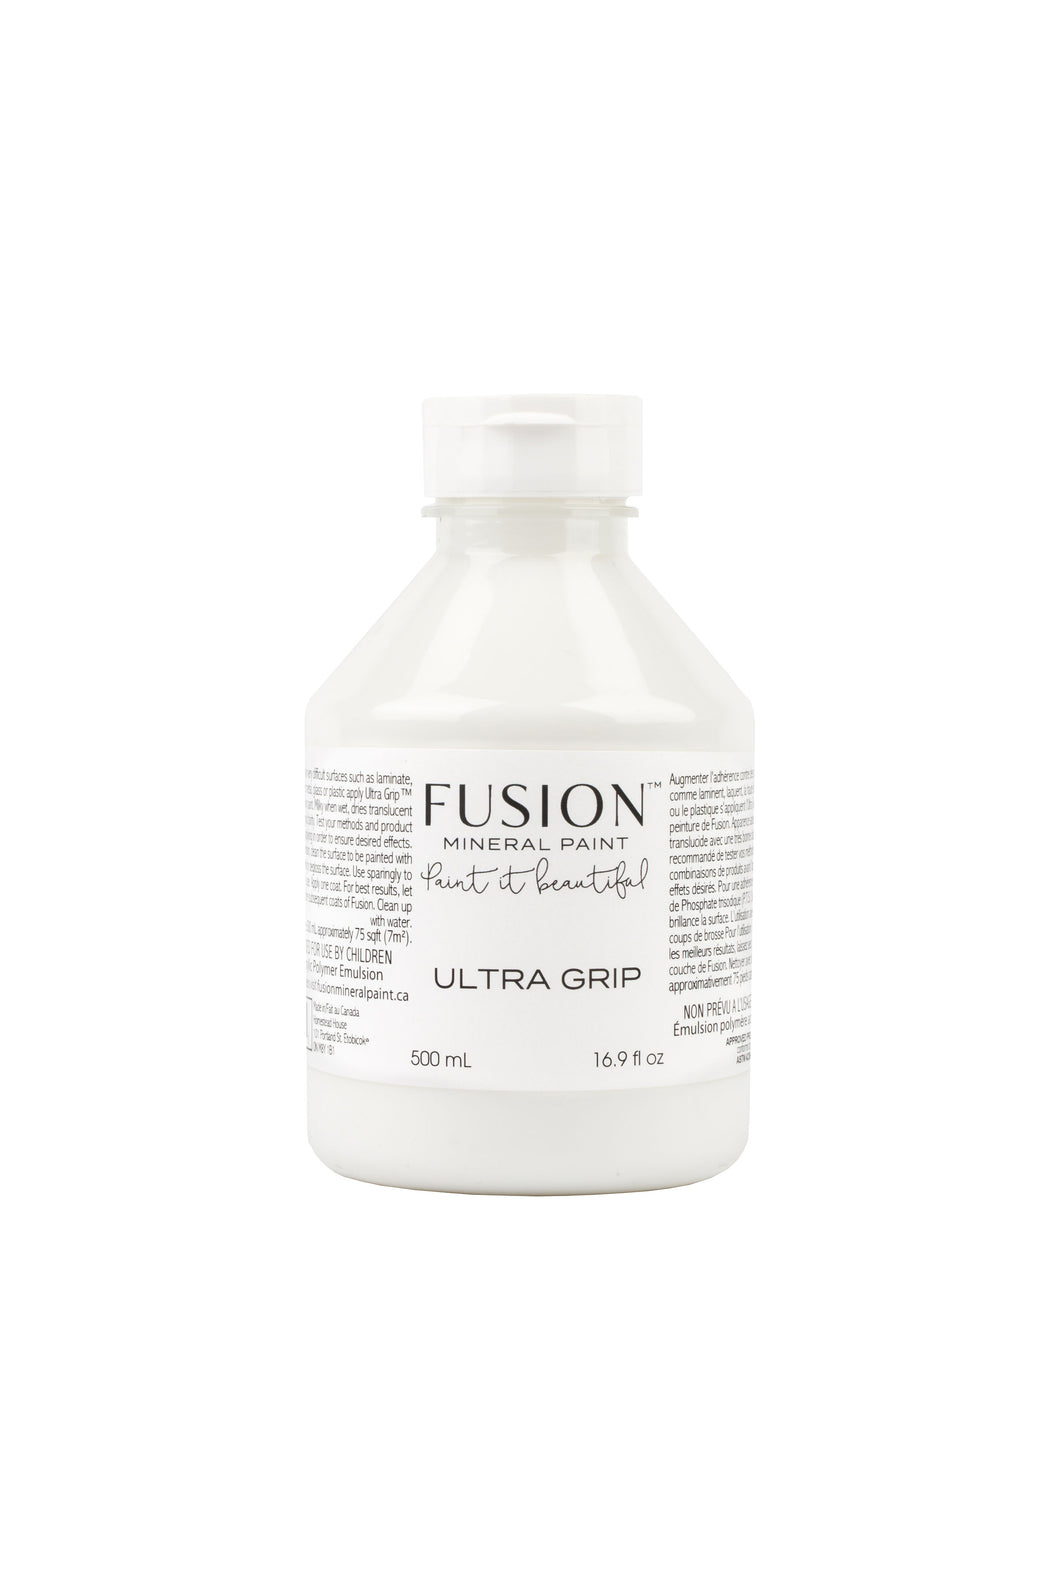 Fusion Mineral Paint Ultra Grip (500ml)